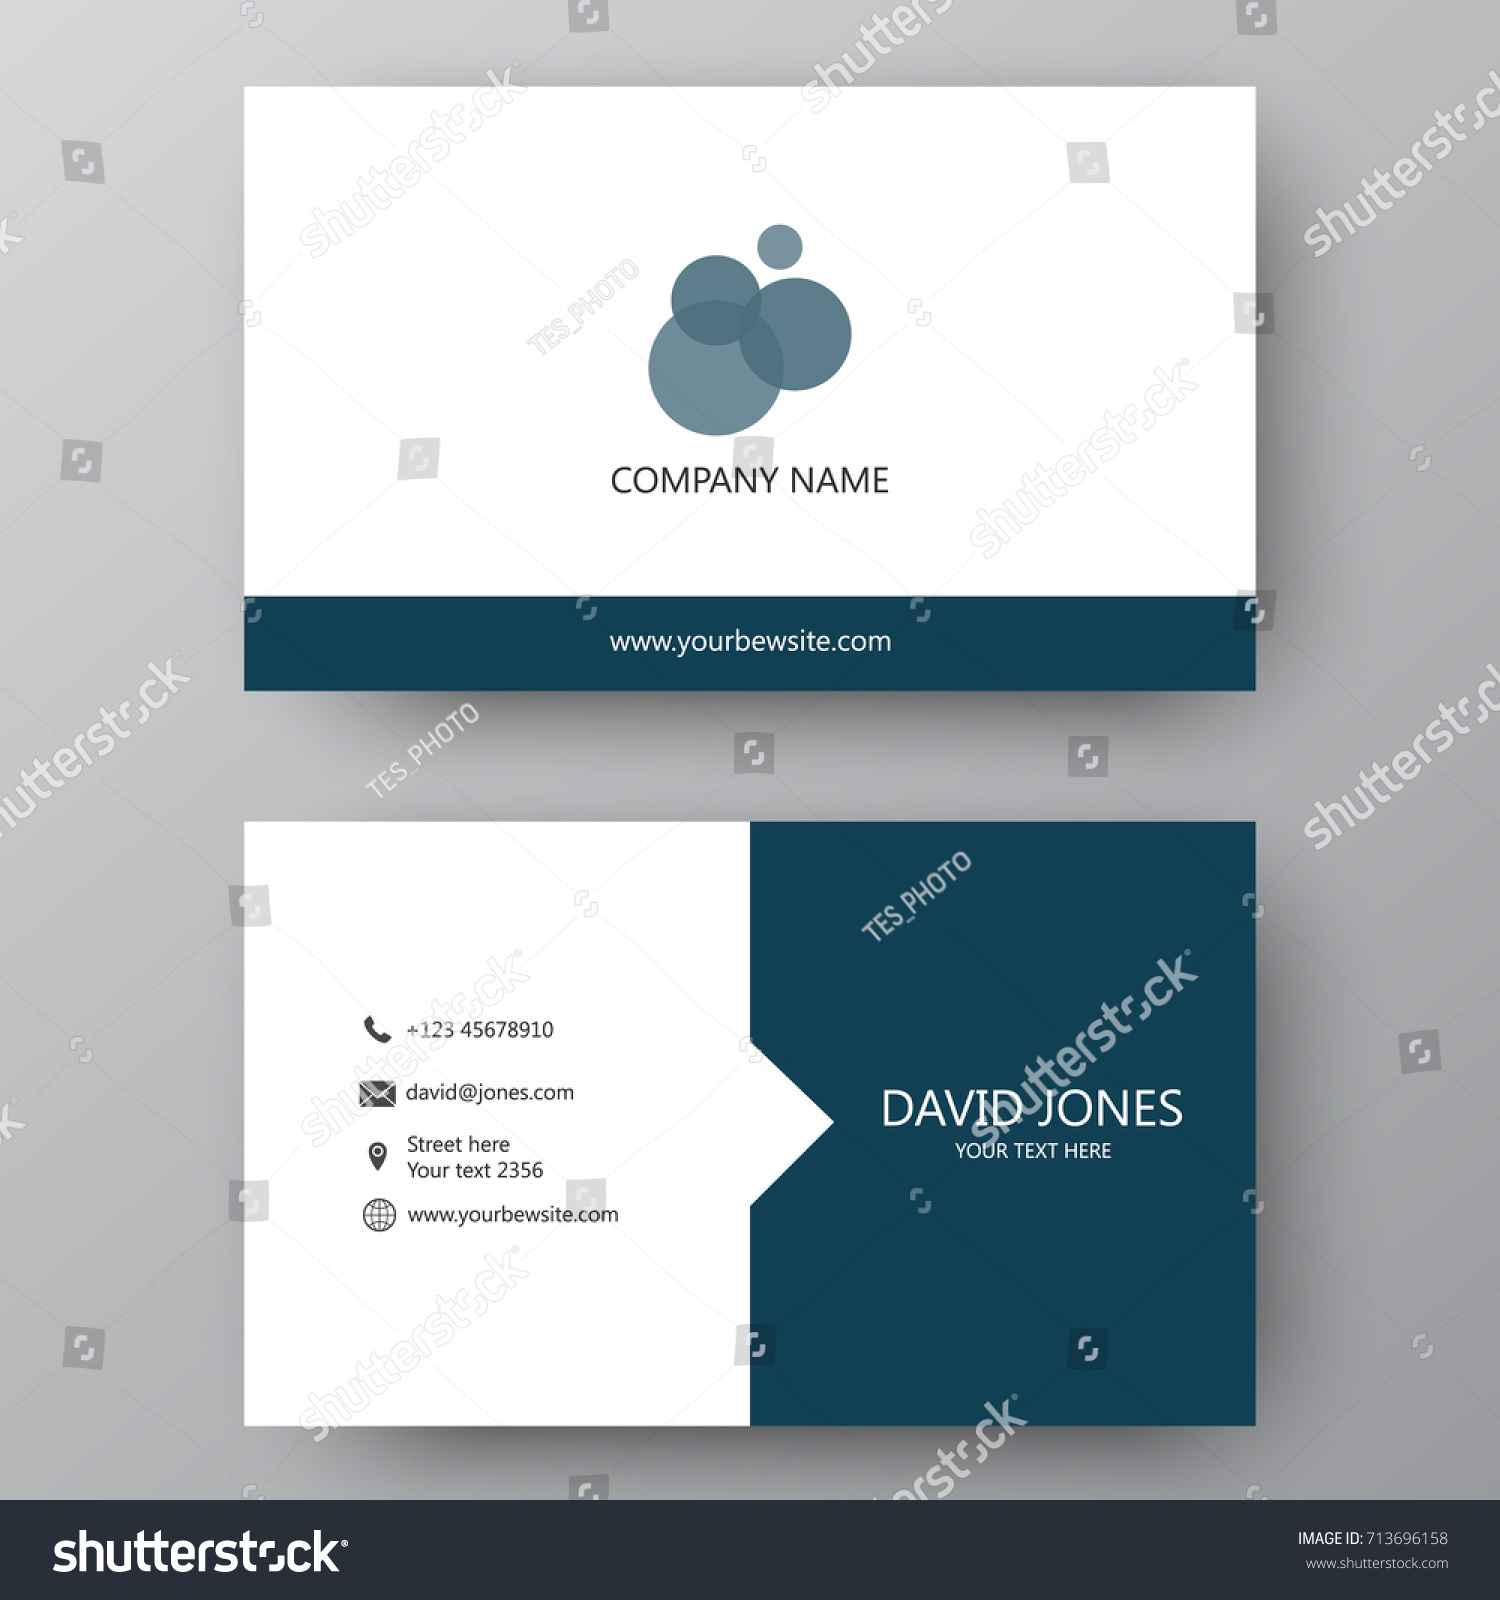 Vector business card template visiting card stock vector 713696158 vector business card template visiting card for business and personal use modern presentation card magicingreecefo Choice Image